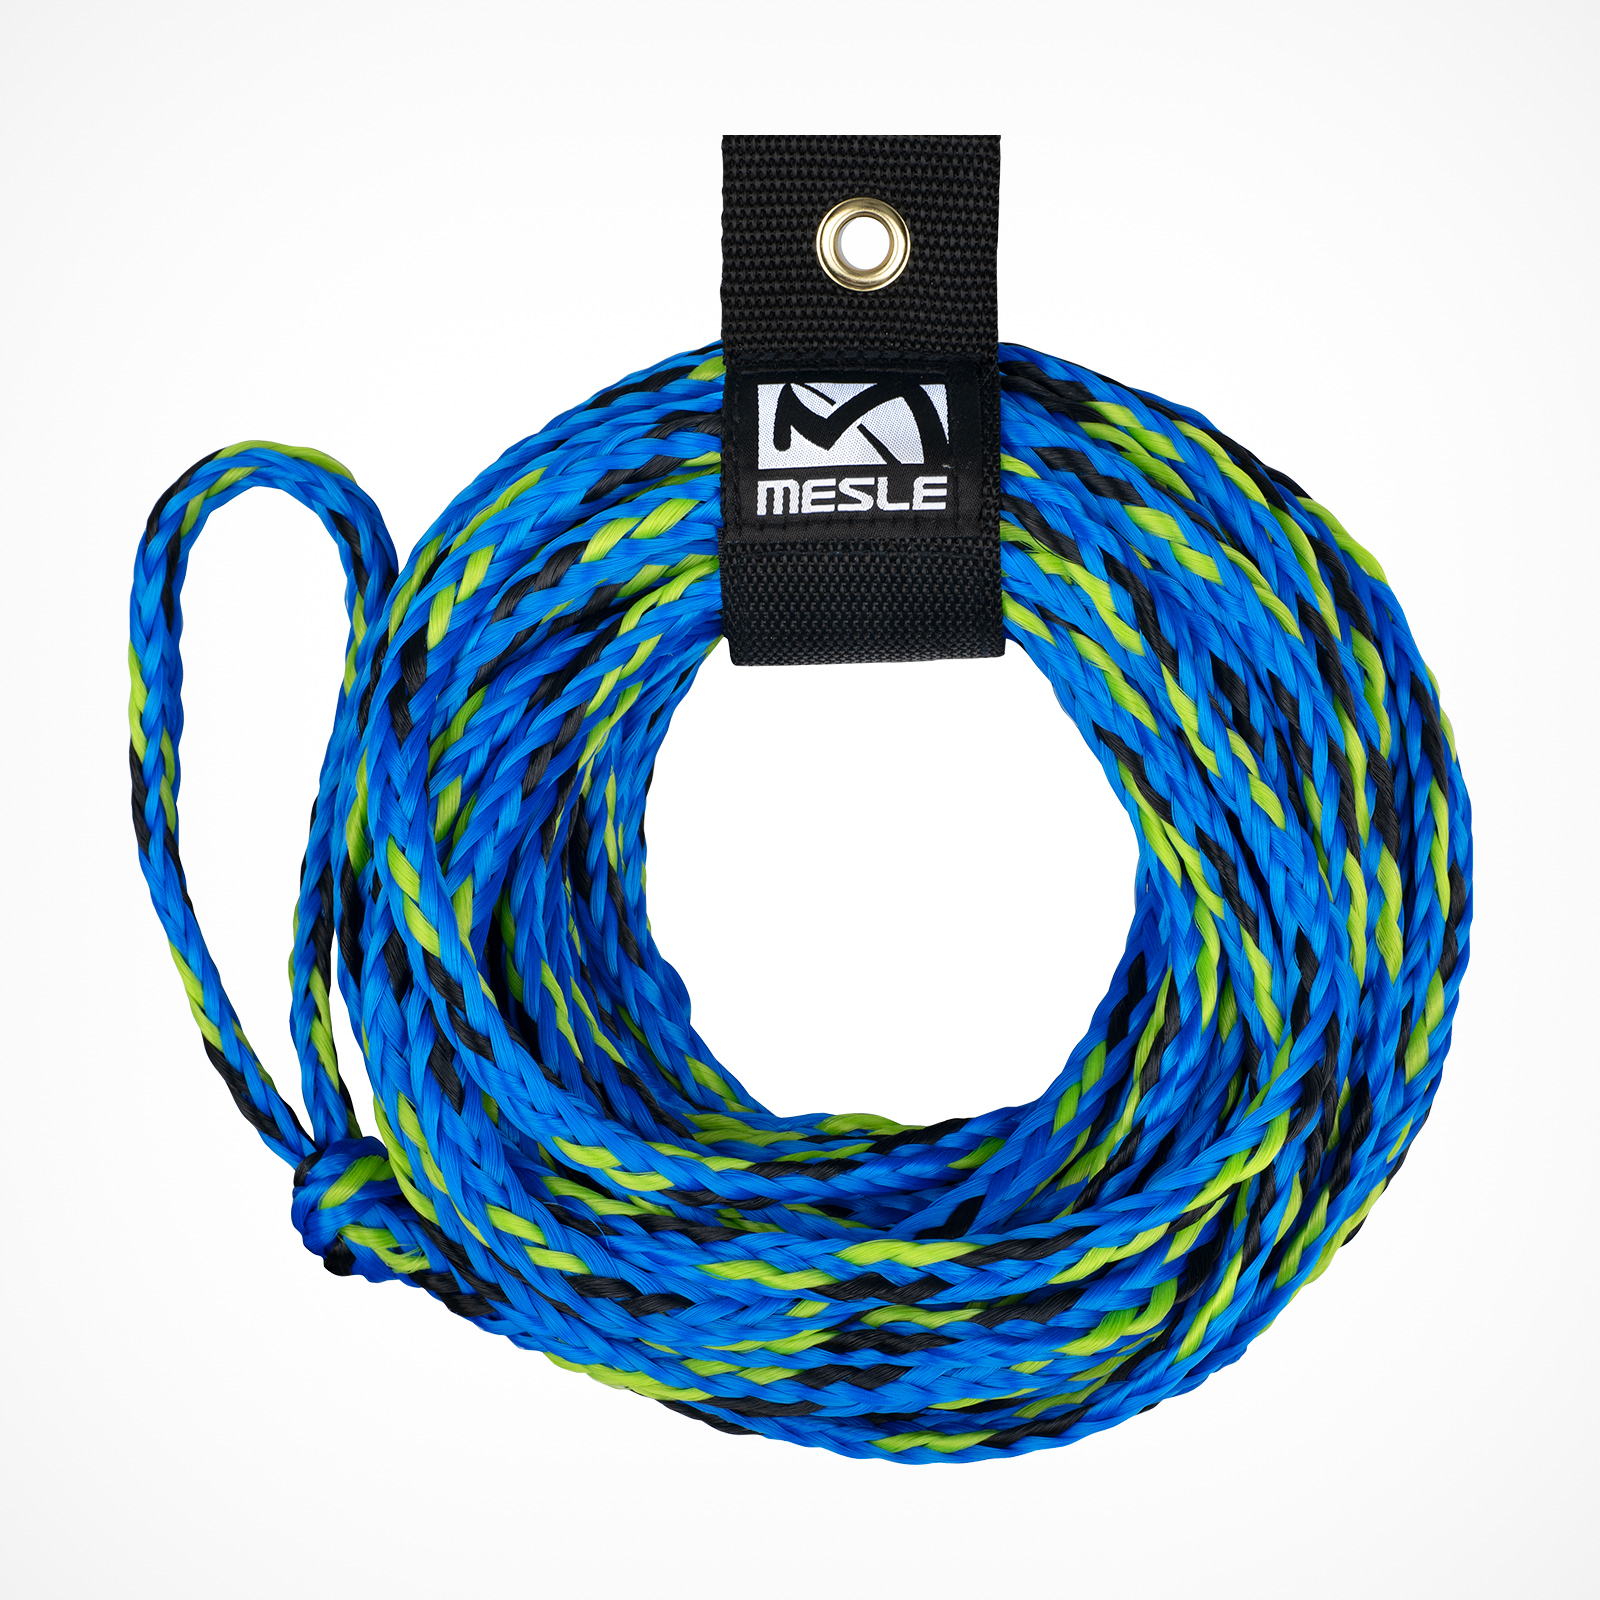 MESLE Schleppleine for 2 Persons towable Tubes, blue-green, inclusive Rope Keeper